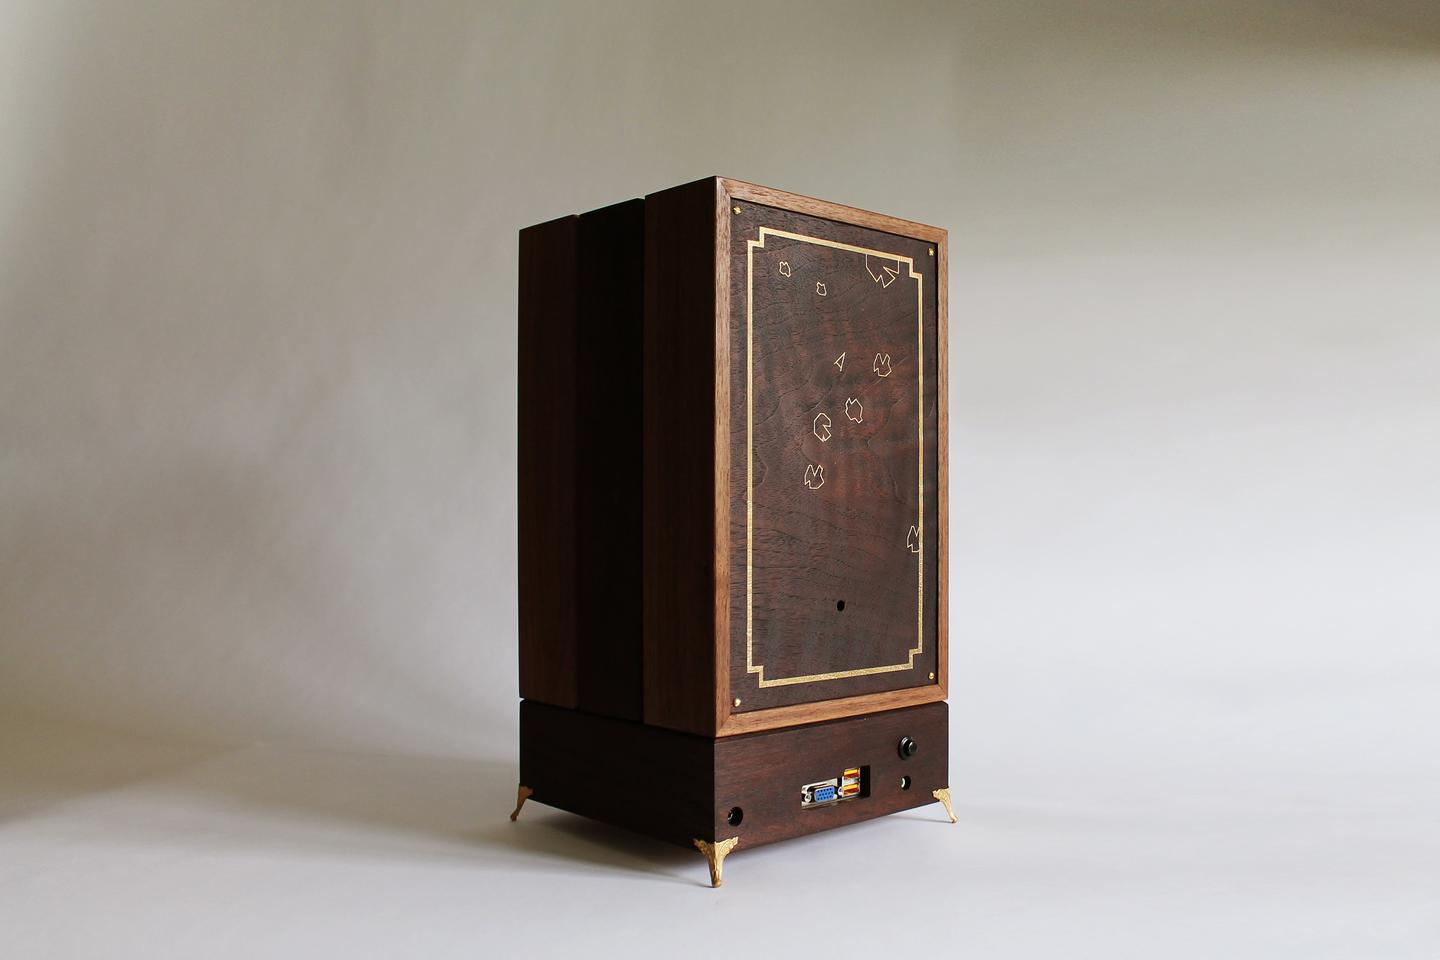 When not in use, R-Kaid-42 can be assembled into a box which looks vaguely like an old-fashioned radio